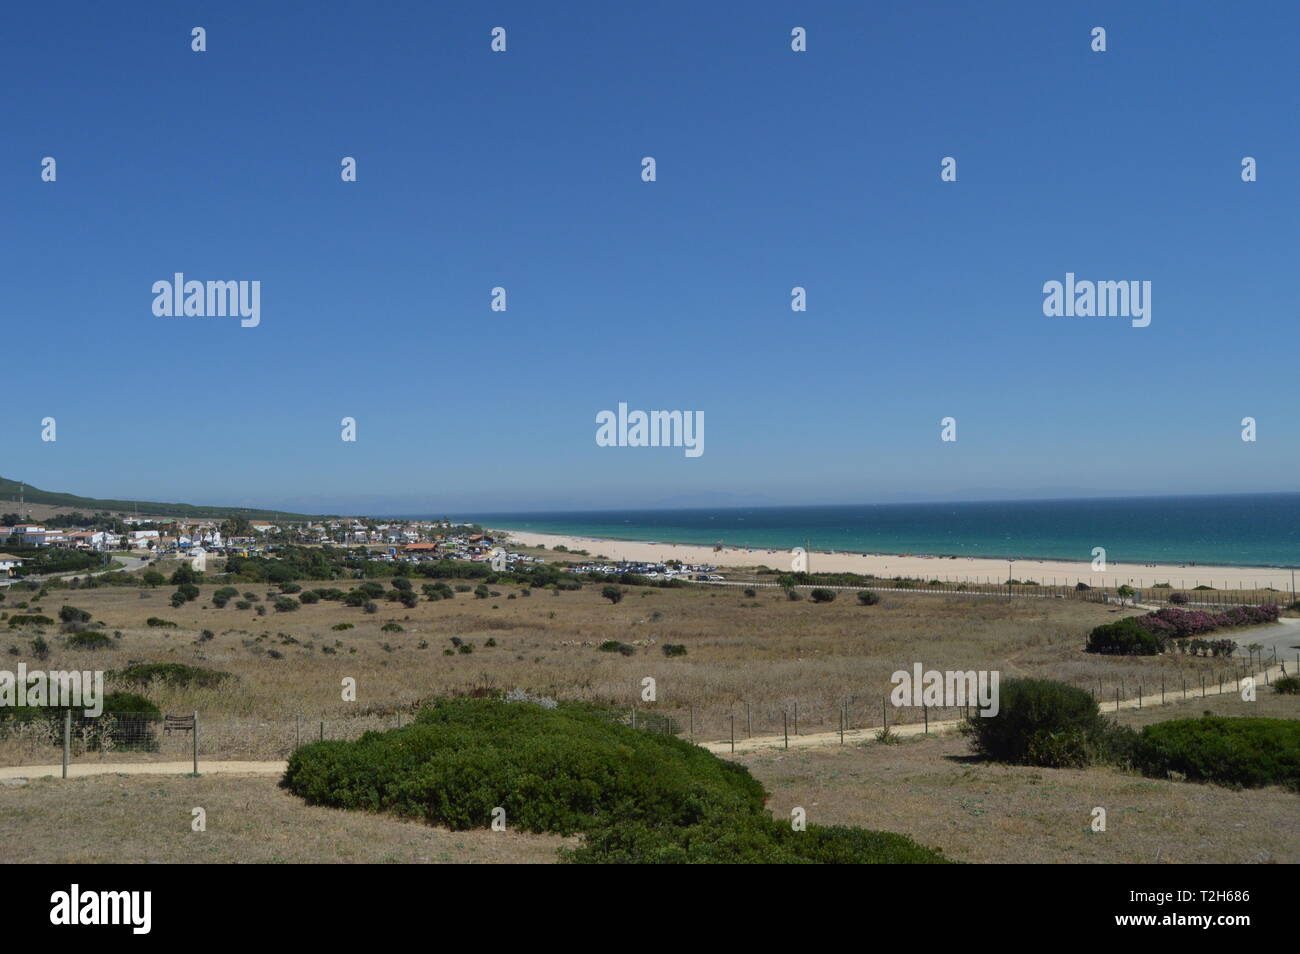 Only Virgin Beach Incredibly Preserved In The Iberian Peninsula Beach Of Bologna In Tarifa. Nature, Architecture, History, Street Photography. July 10 Stock Photo